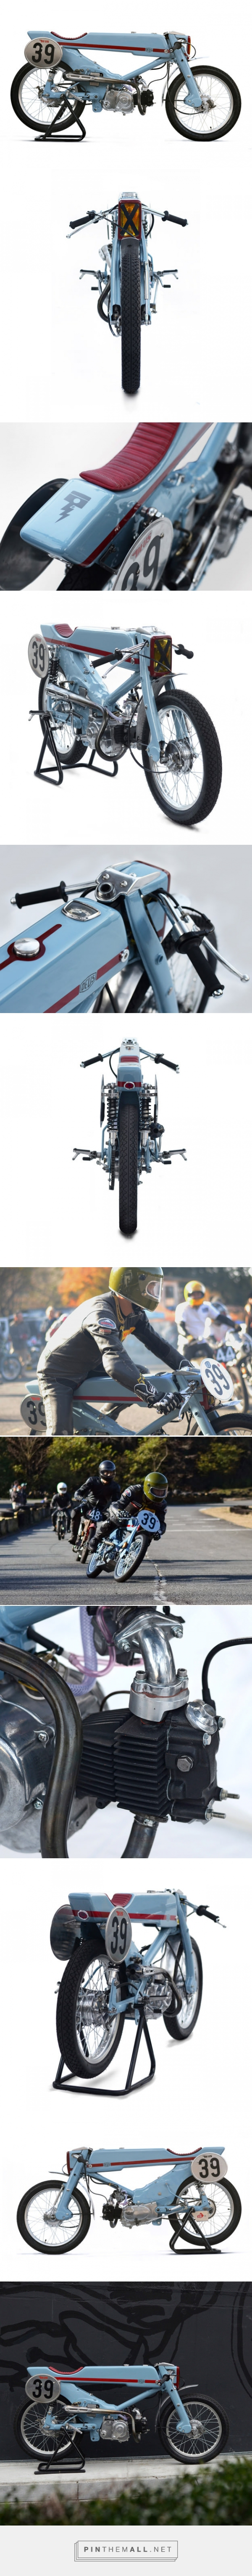 Deus Japan Hot Rods the Honda Super Cub   Bike EXIF... - a grouped images picture - Pin Them All